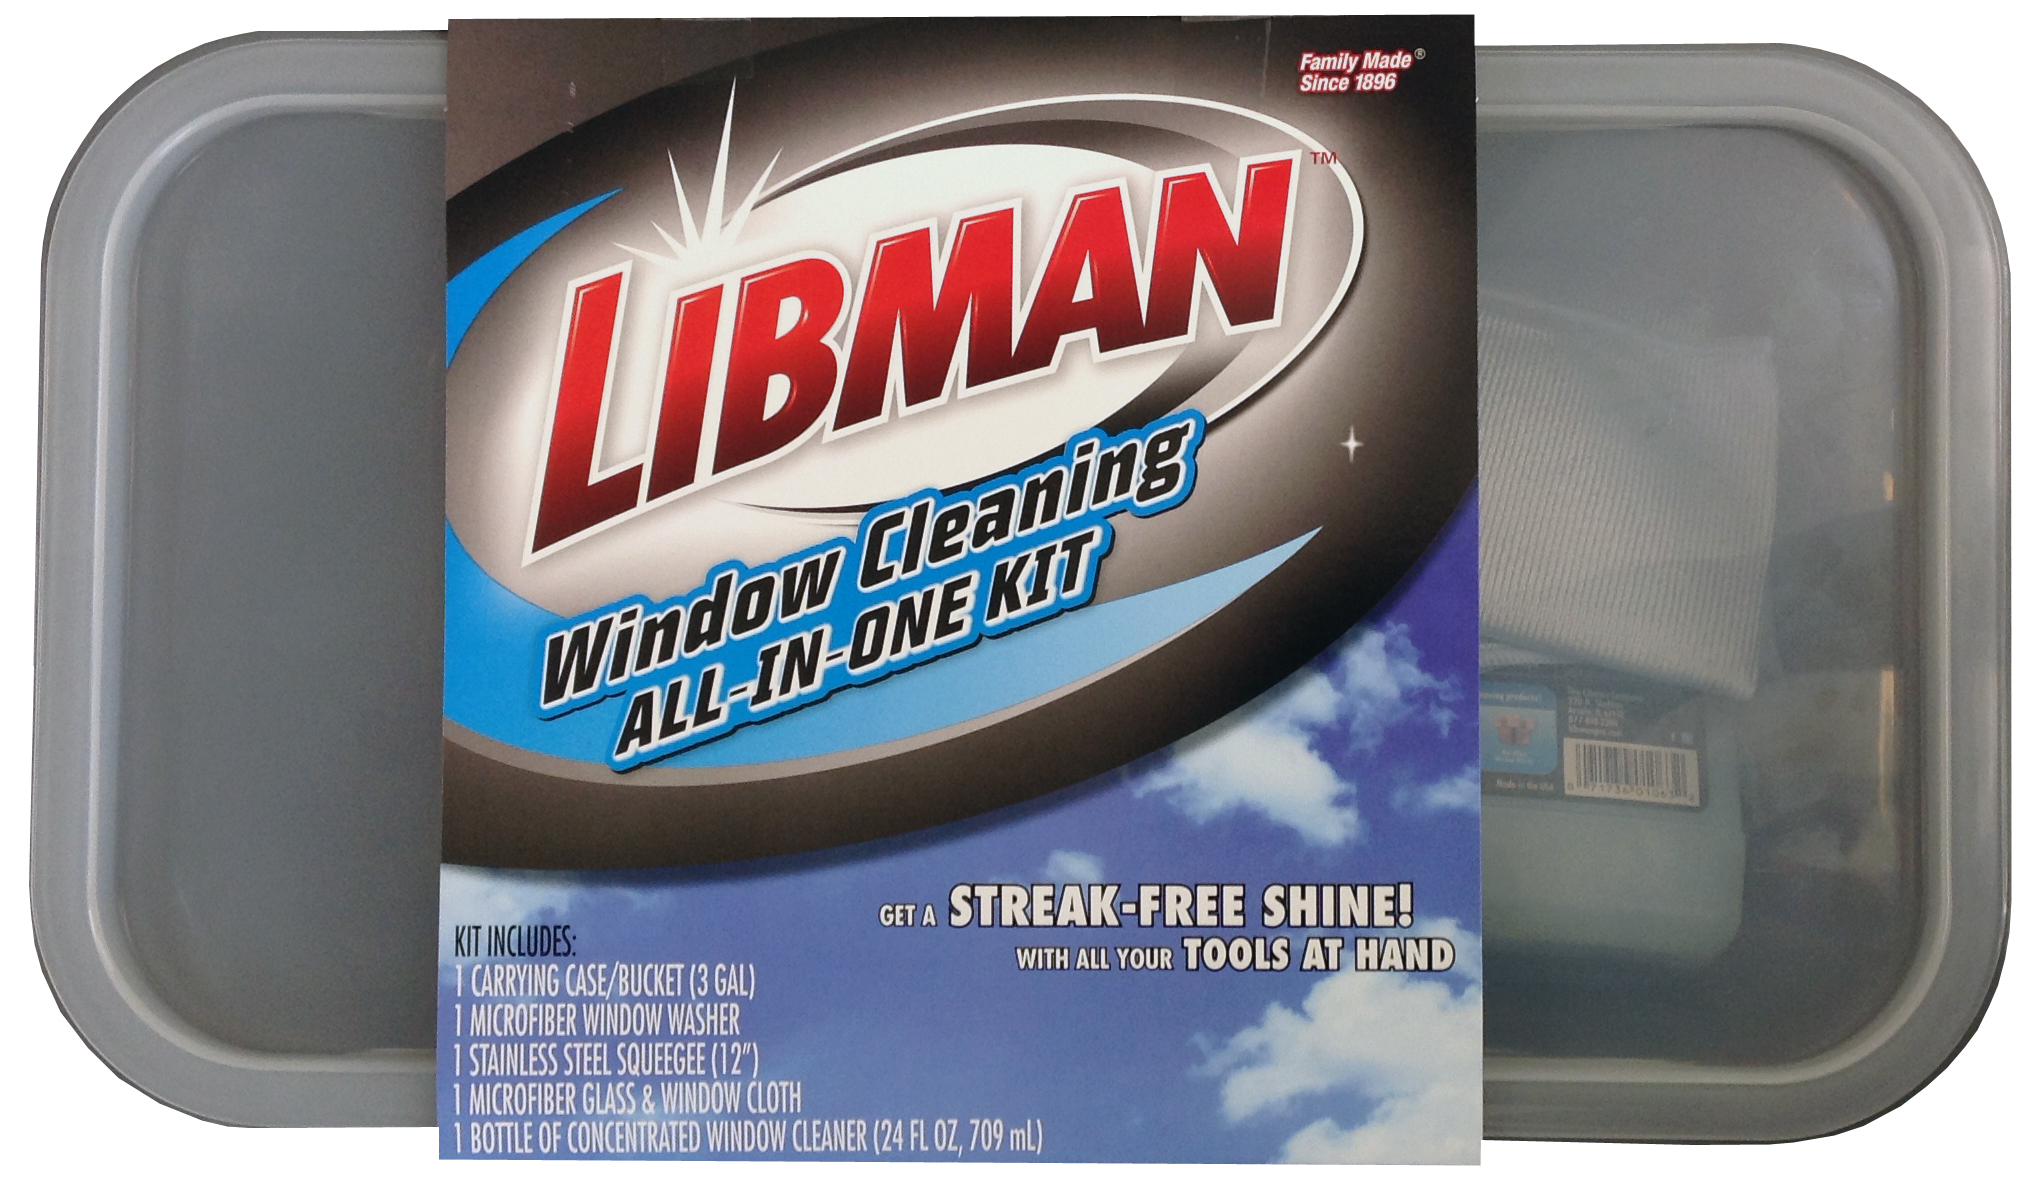 Libman All-in-One Window Cleaning Kit at Sears.com